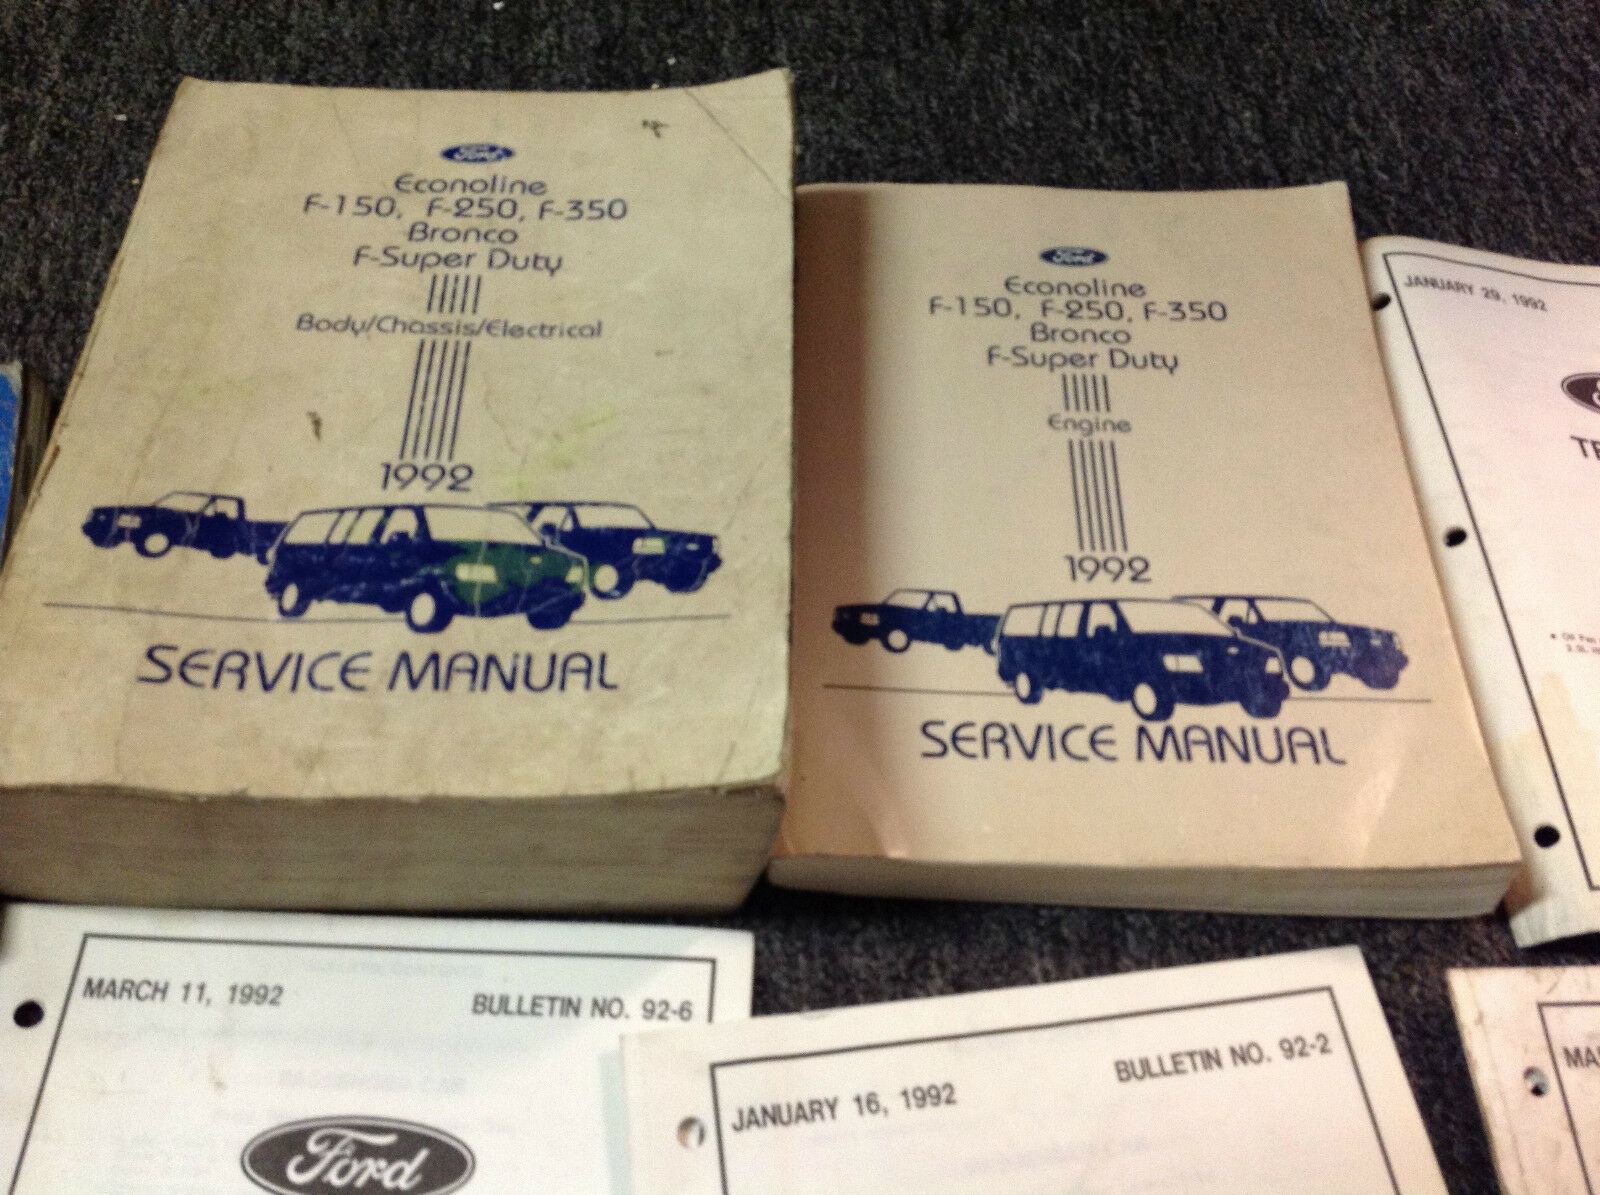 1992 ford f150 f250 f350 bronco truck service shop repair manual set rh extensivefad top 1992 ford f250 repair manual free download 1999 Ford F-250